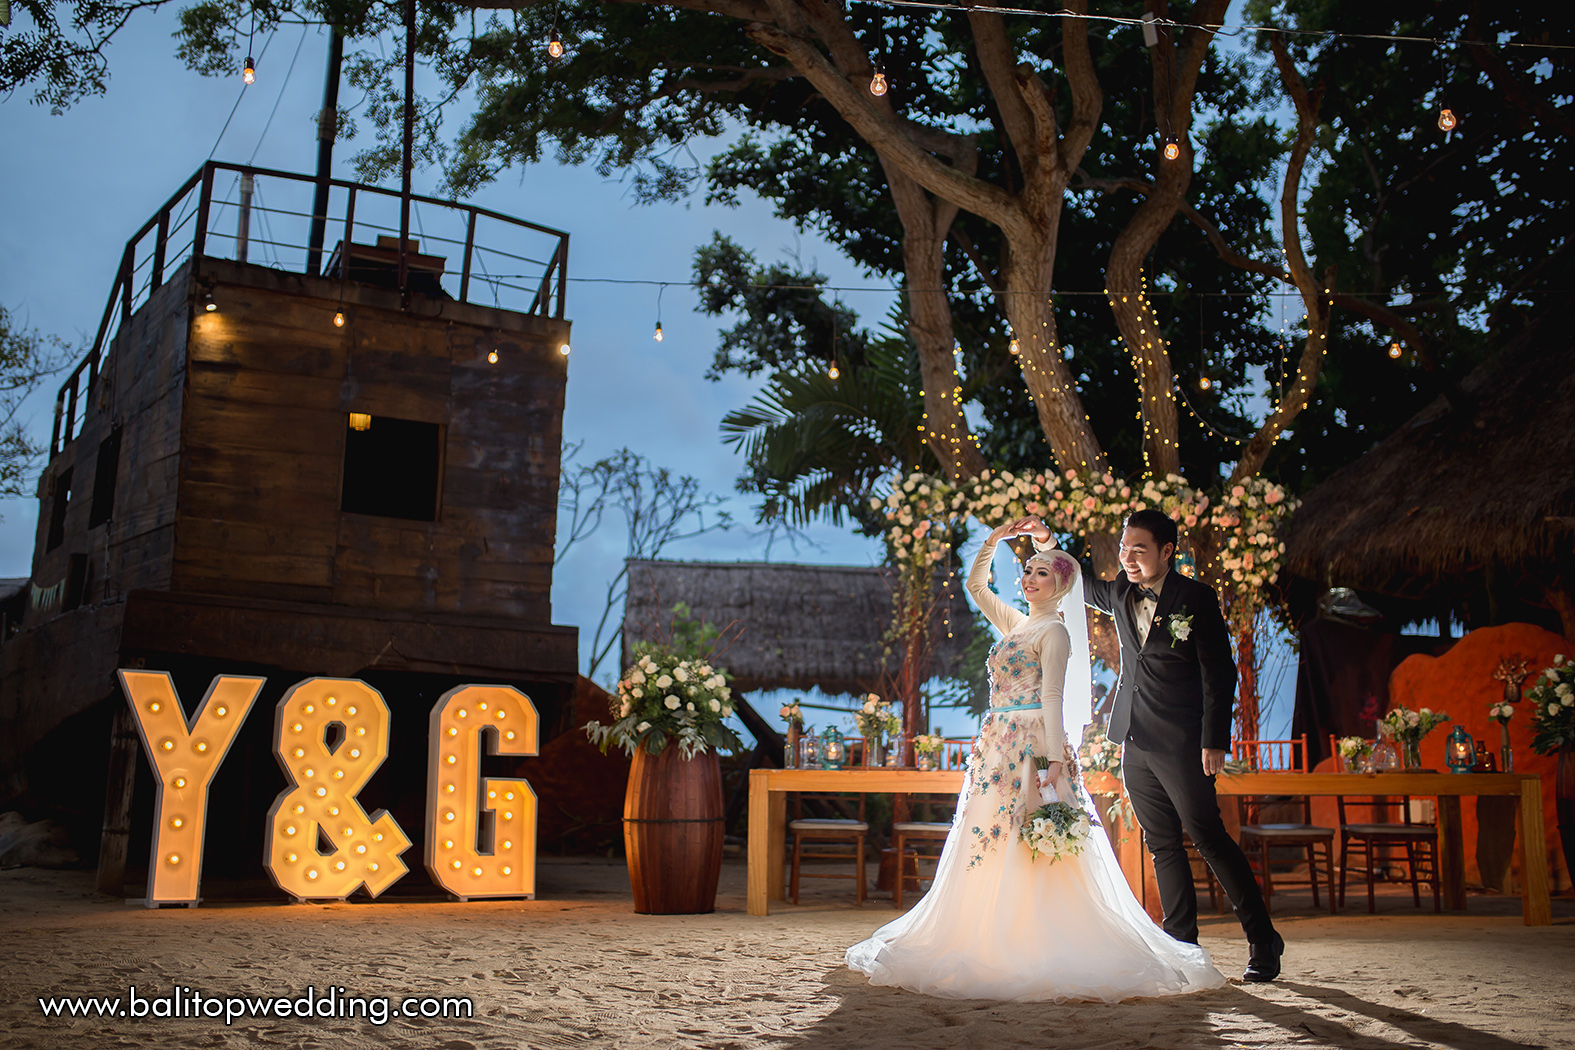 Wedding Venue Favorit di Bali